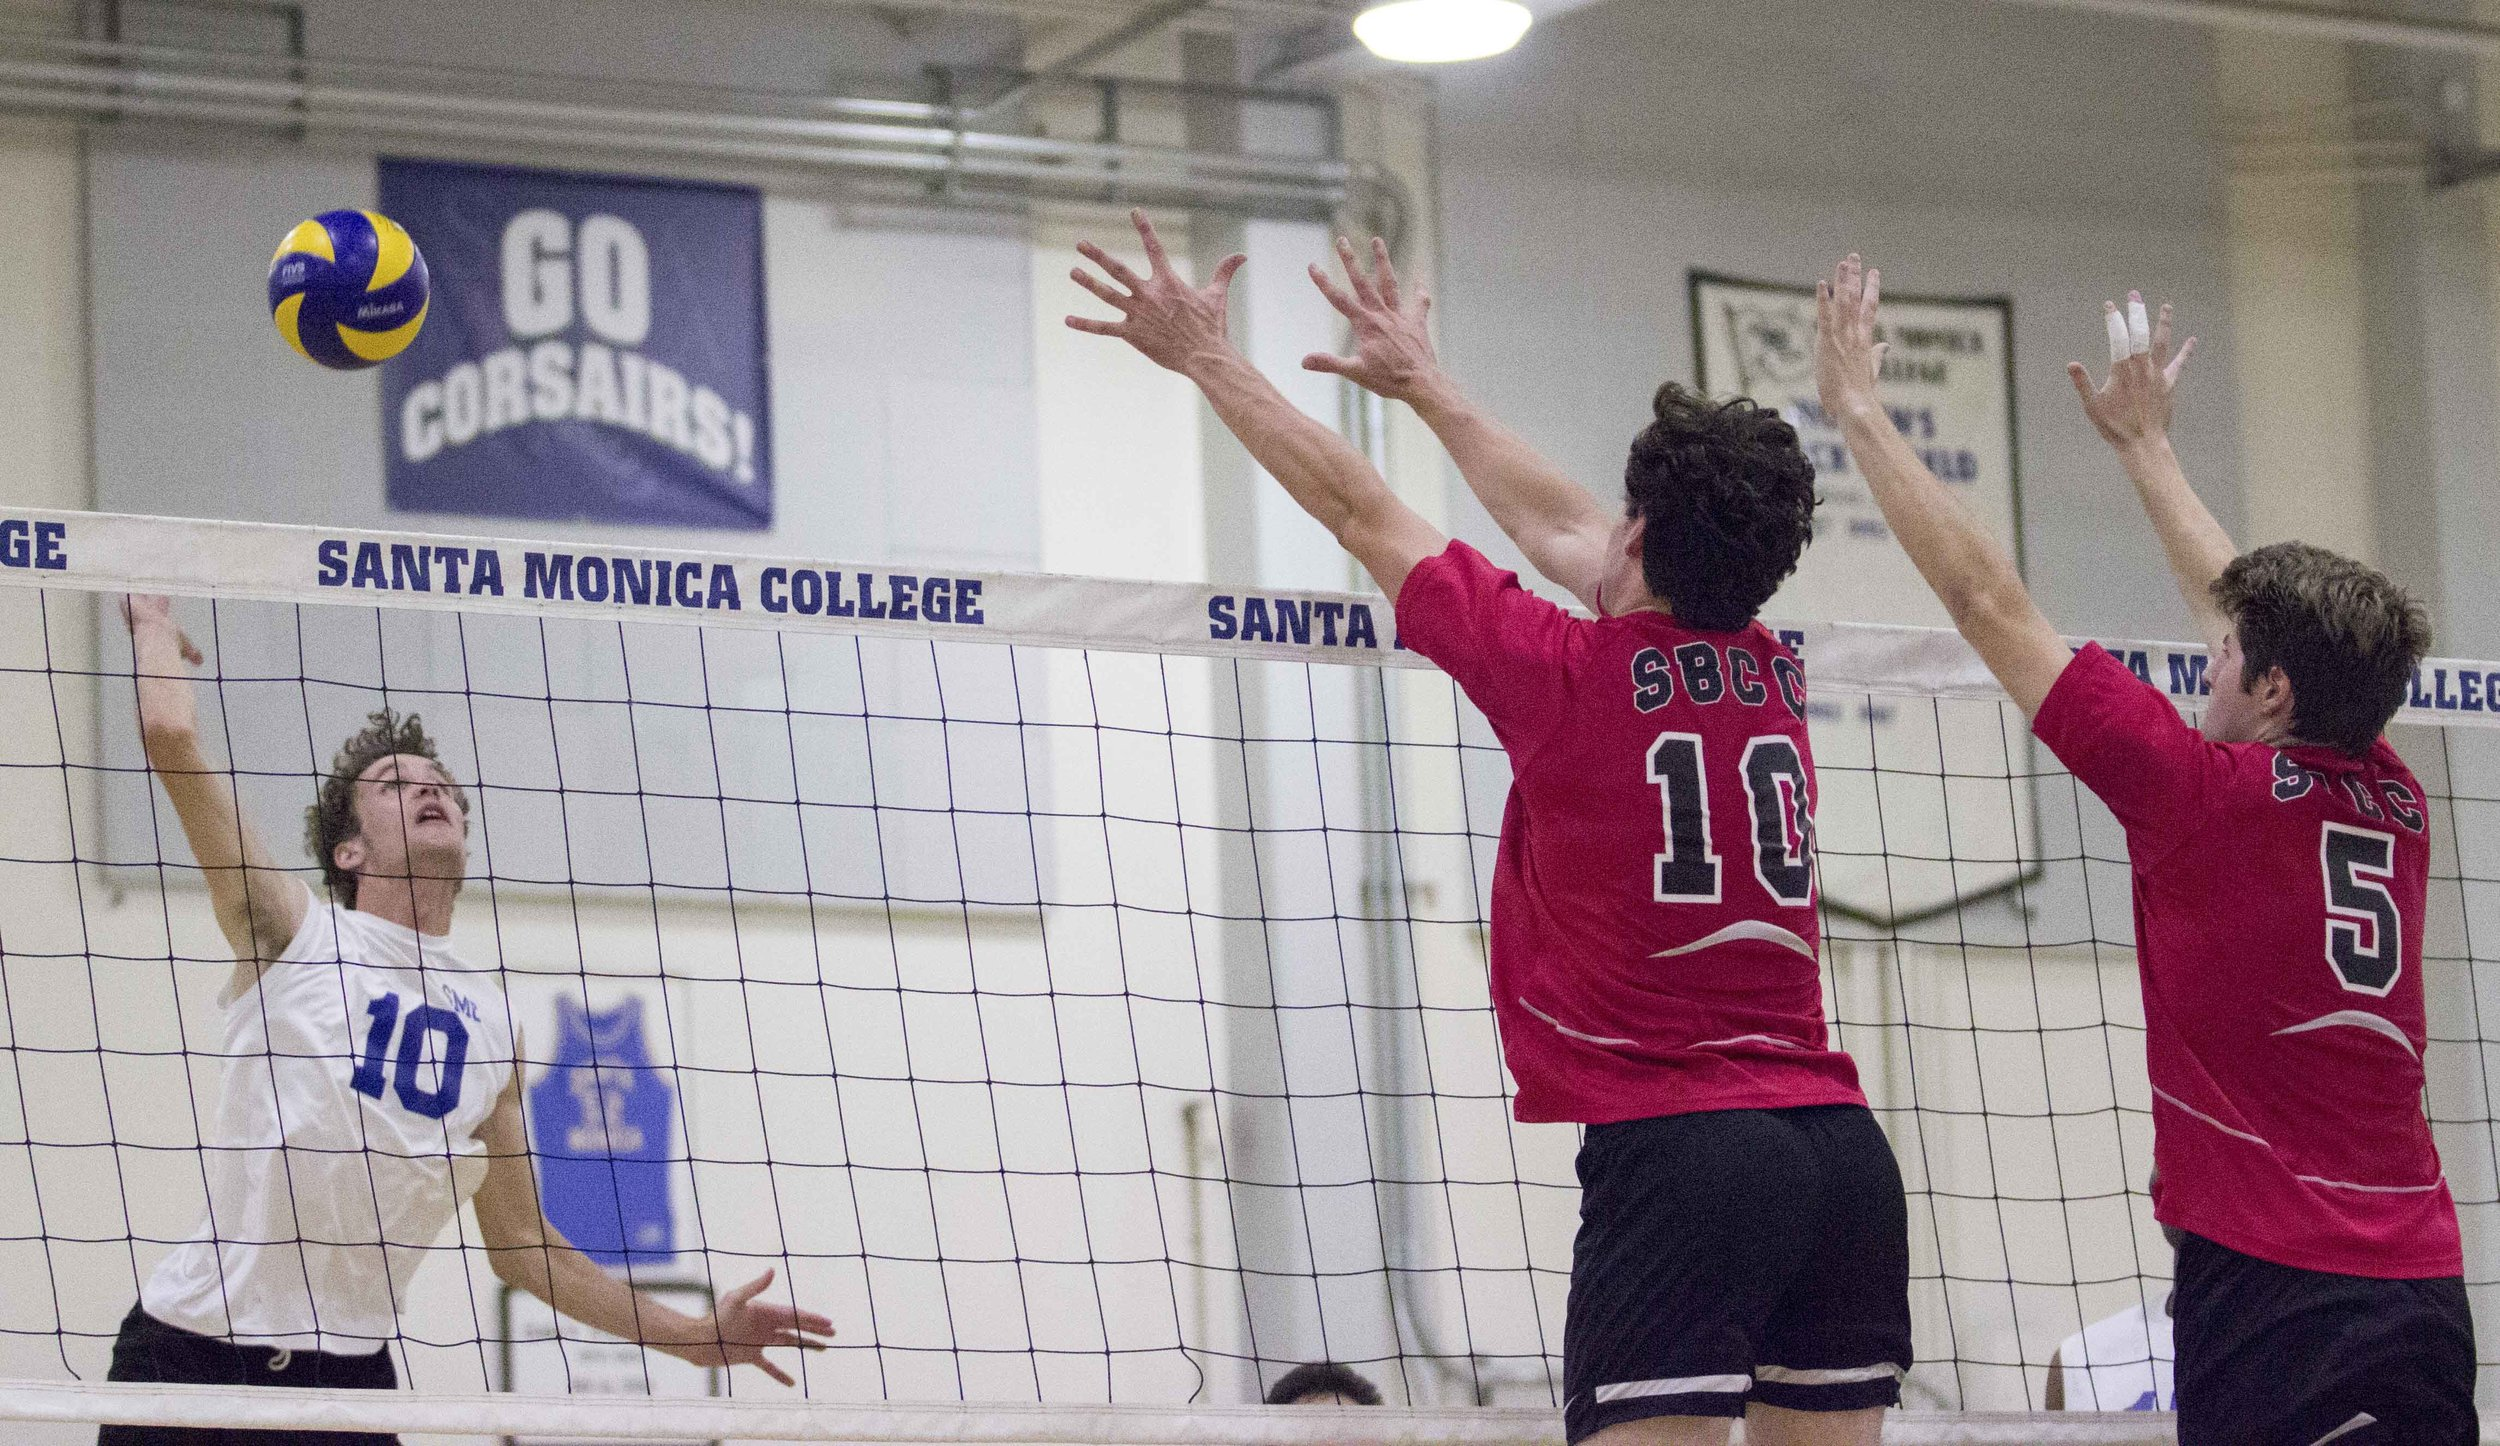 Santa Monica College Corsairs sophomore right side hitter Shane Stoklos (10, left) lines up a spike as Santa Barbara City College Vaqueros sophomore outside hitter Jackson Mcdonough (10, center) and sophomore middle blocker Jarrod Jordan (5, right) position themselves to block the shot during the Corsairs 3-0 victory in the Santa Monica College Gymnasium at Santa Monica College in Santa Monica California on March 15, 2017 (Photo By: Zane Meyer)